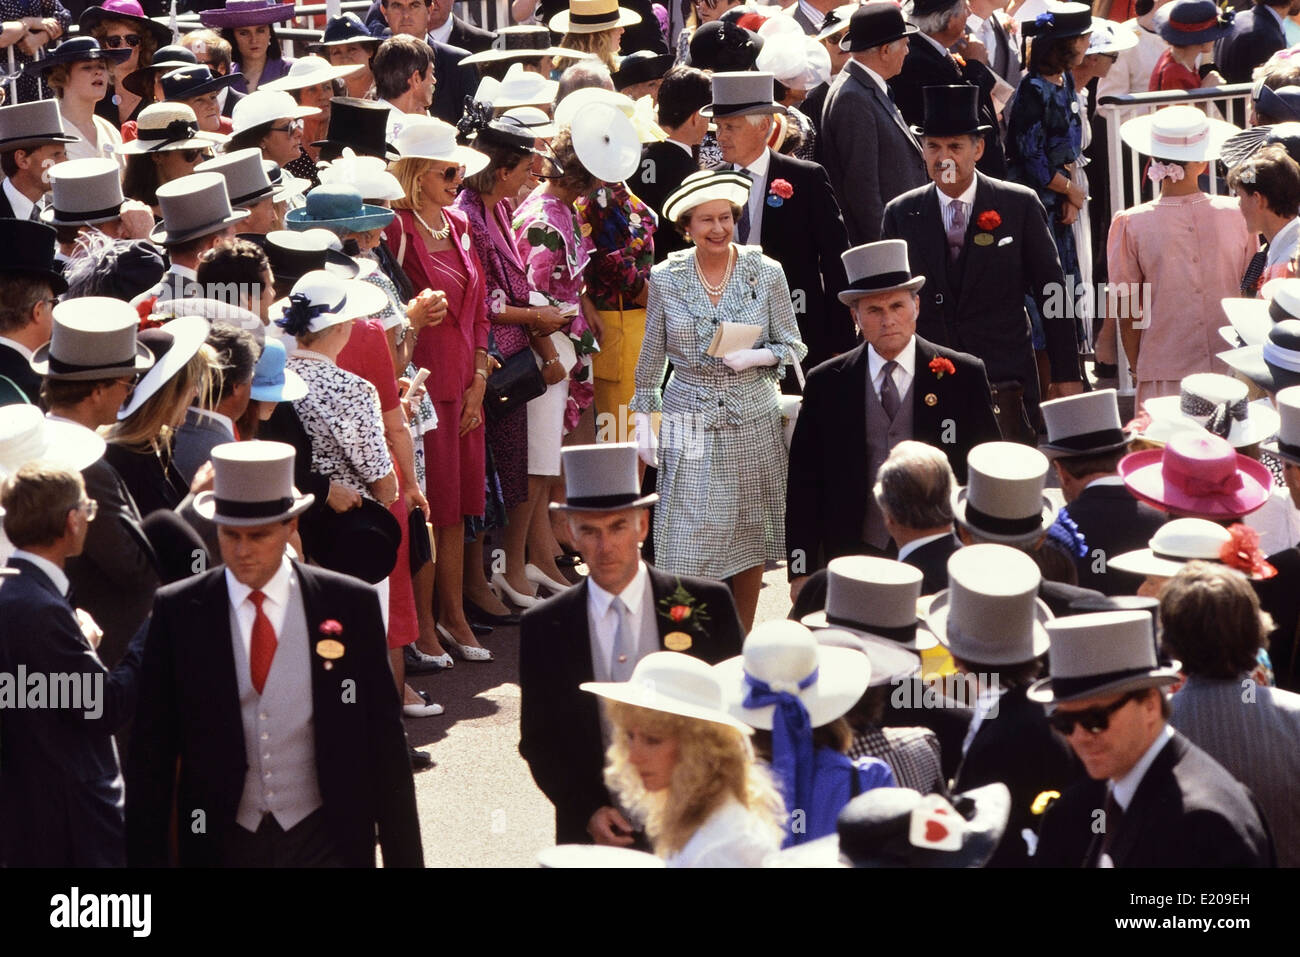 A smiling Queen Elizabeth II walking in the Royal enclosure during race week at Ascot Races circa 1989 - Stock Image